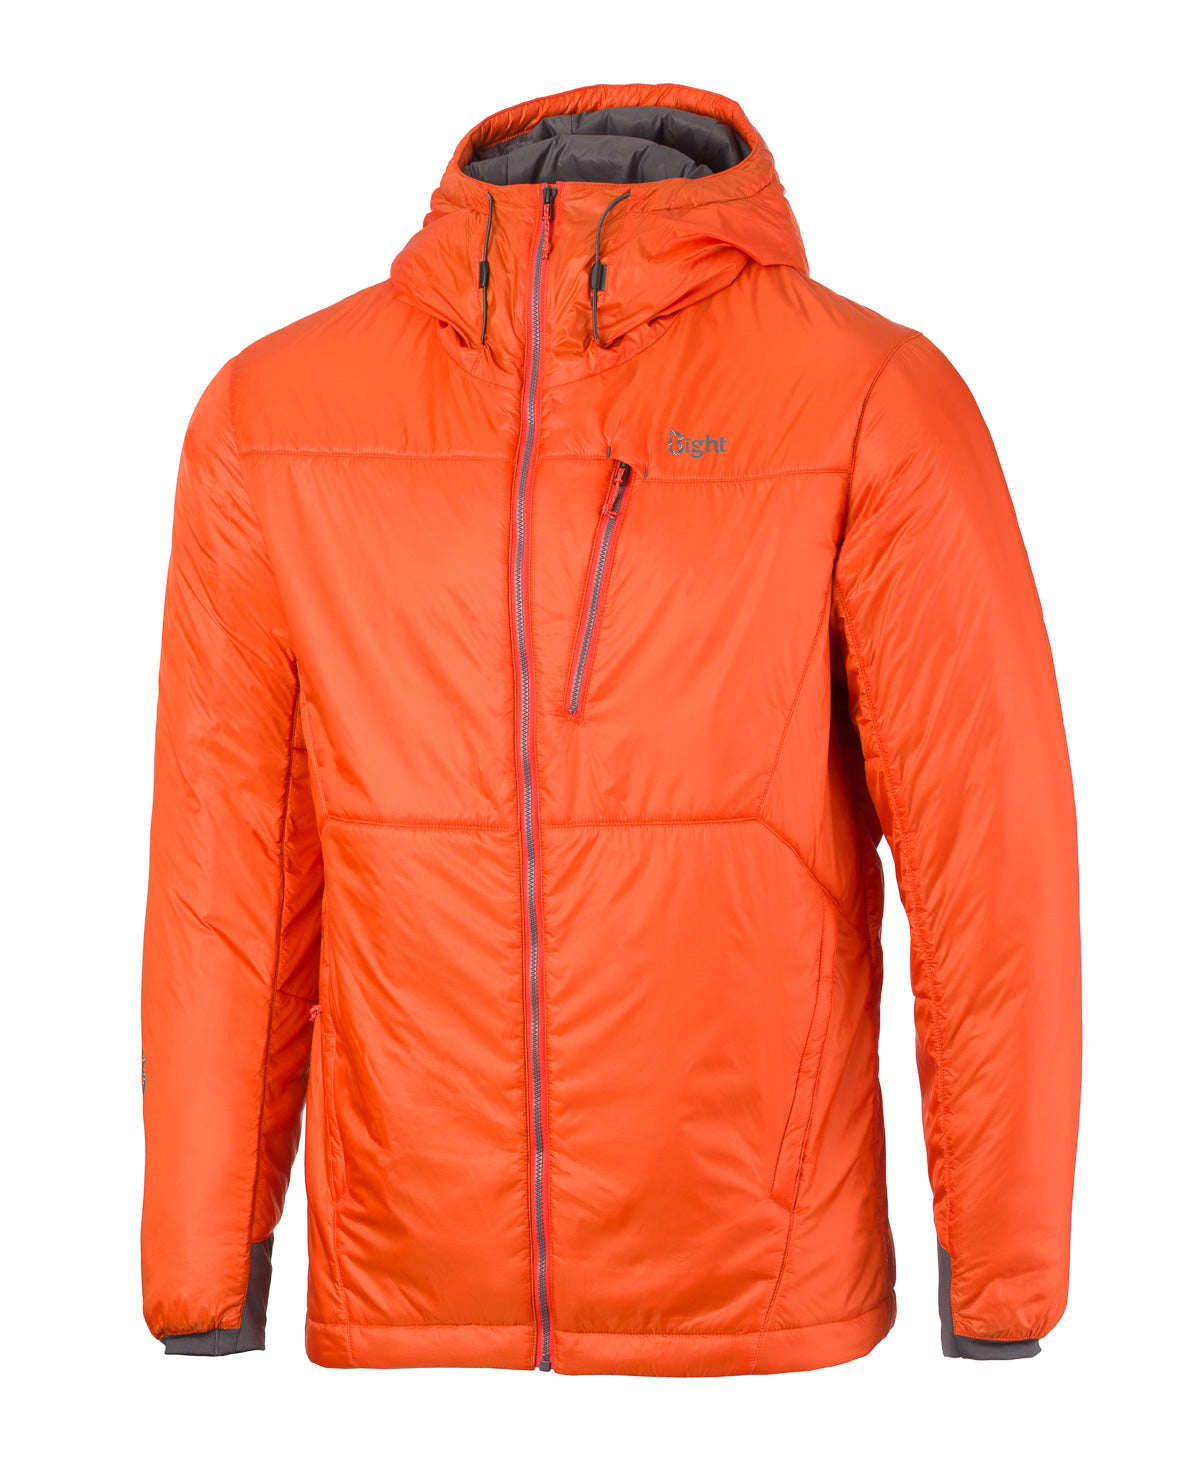 2020 Men's Swelter Jacket